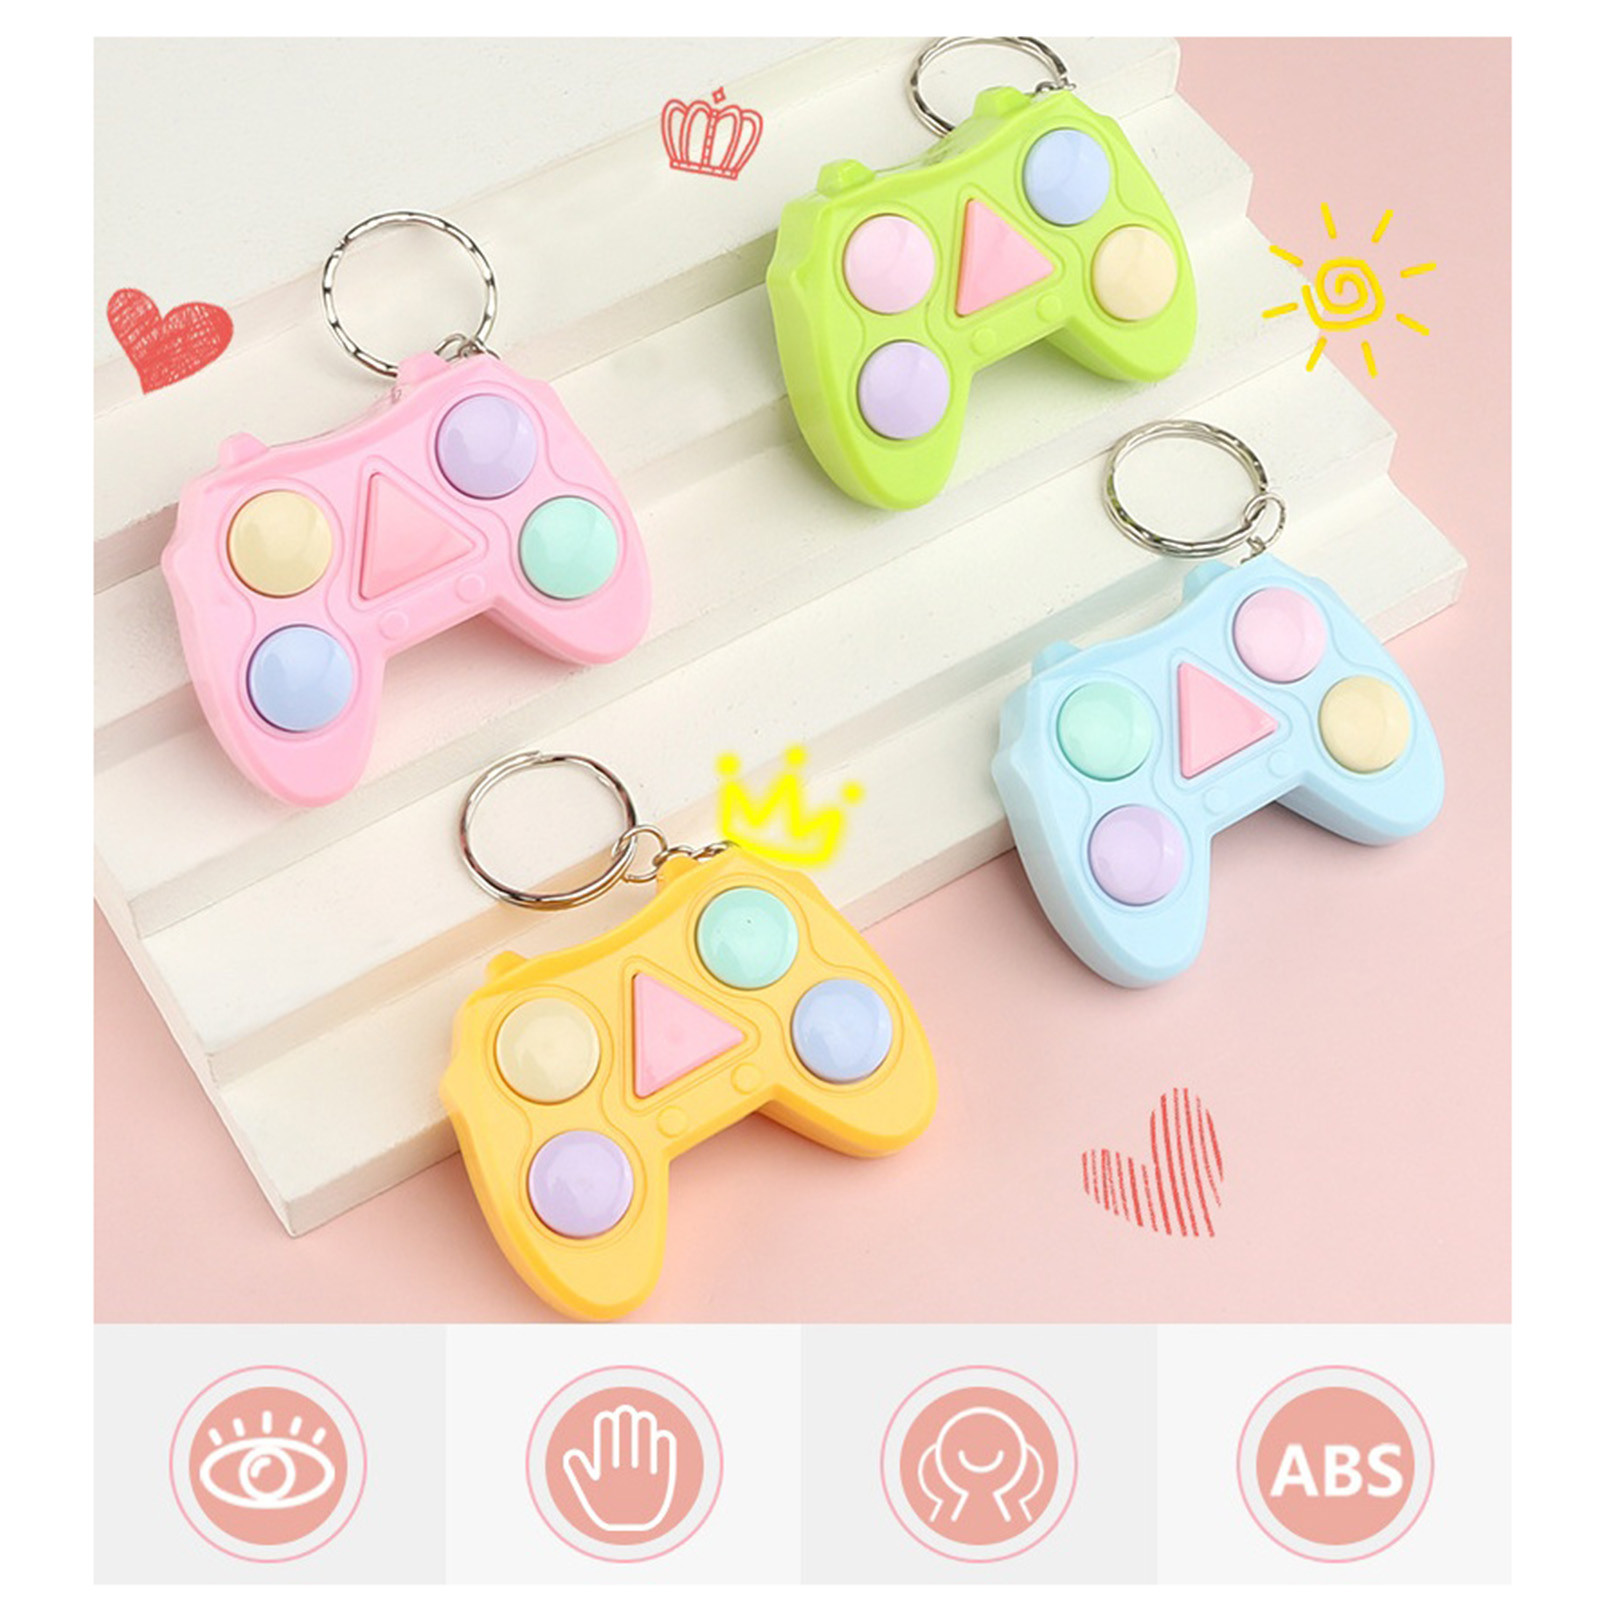 Stress Relief Fidget-Toy-Pack Memory Color-Game-Machine Keychain Gadget Mini-Handle Training img3